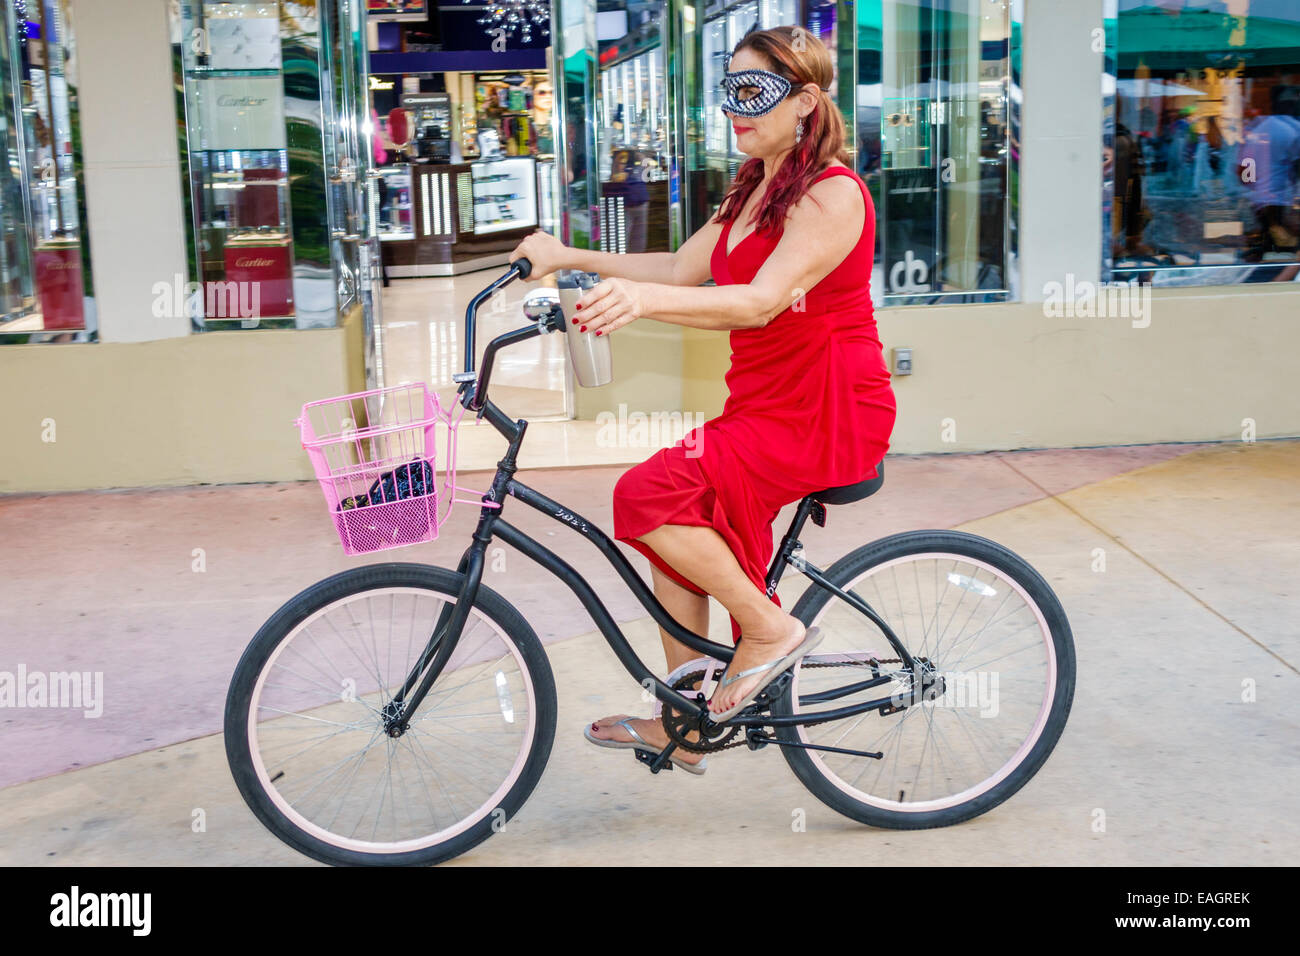 Miami Beach Florida Lincoln Road pedestrian mall Halloween costume wearing outfit character woman mask riding bicycle - Stock Image